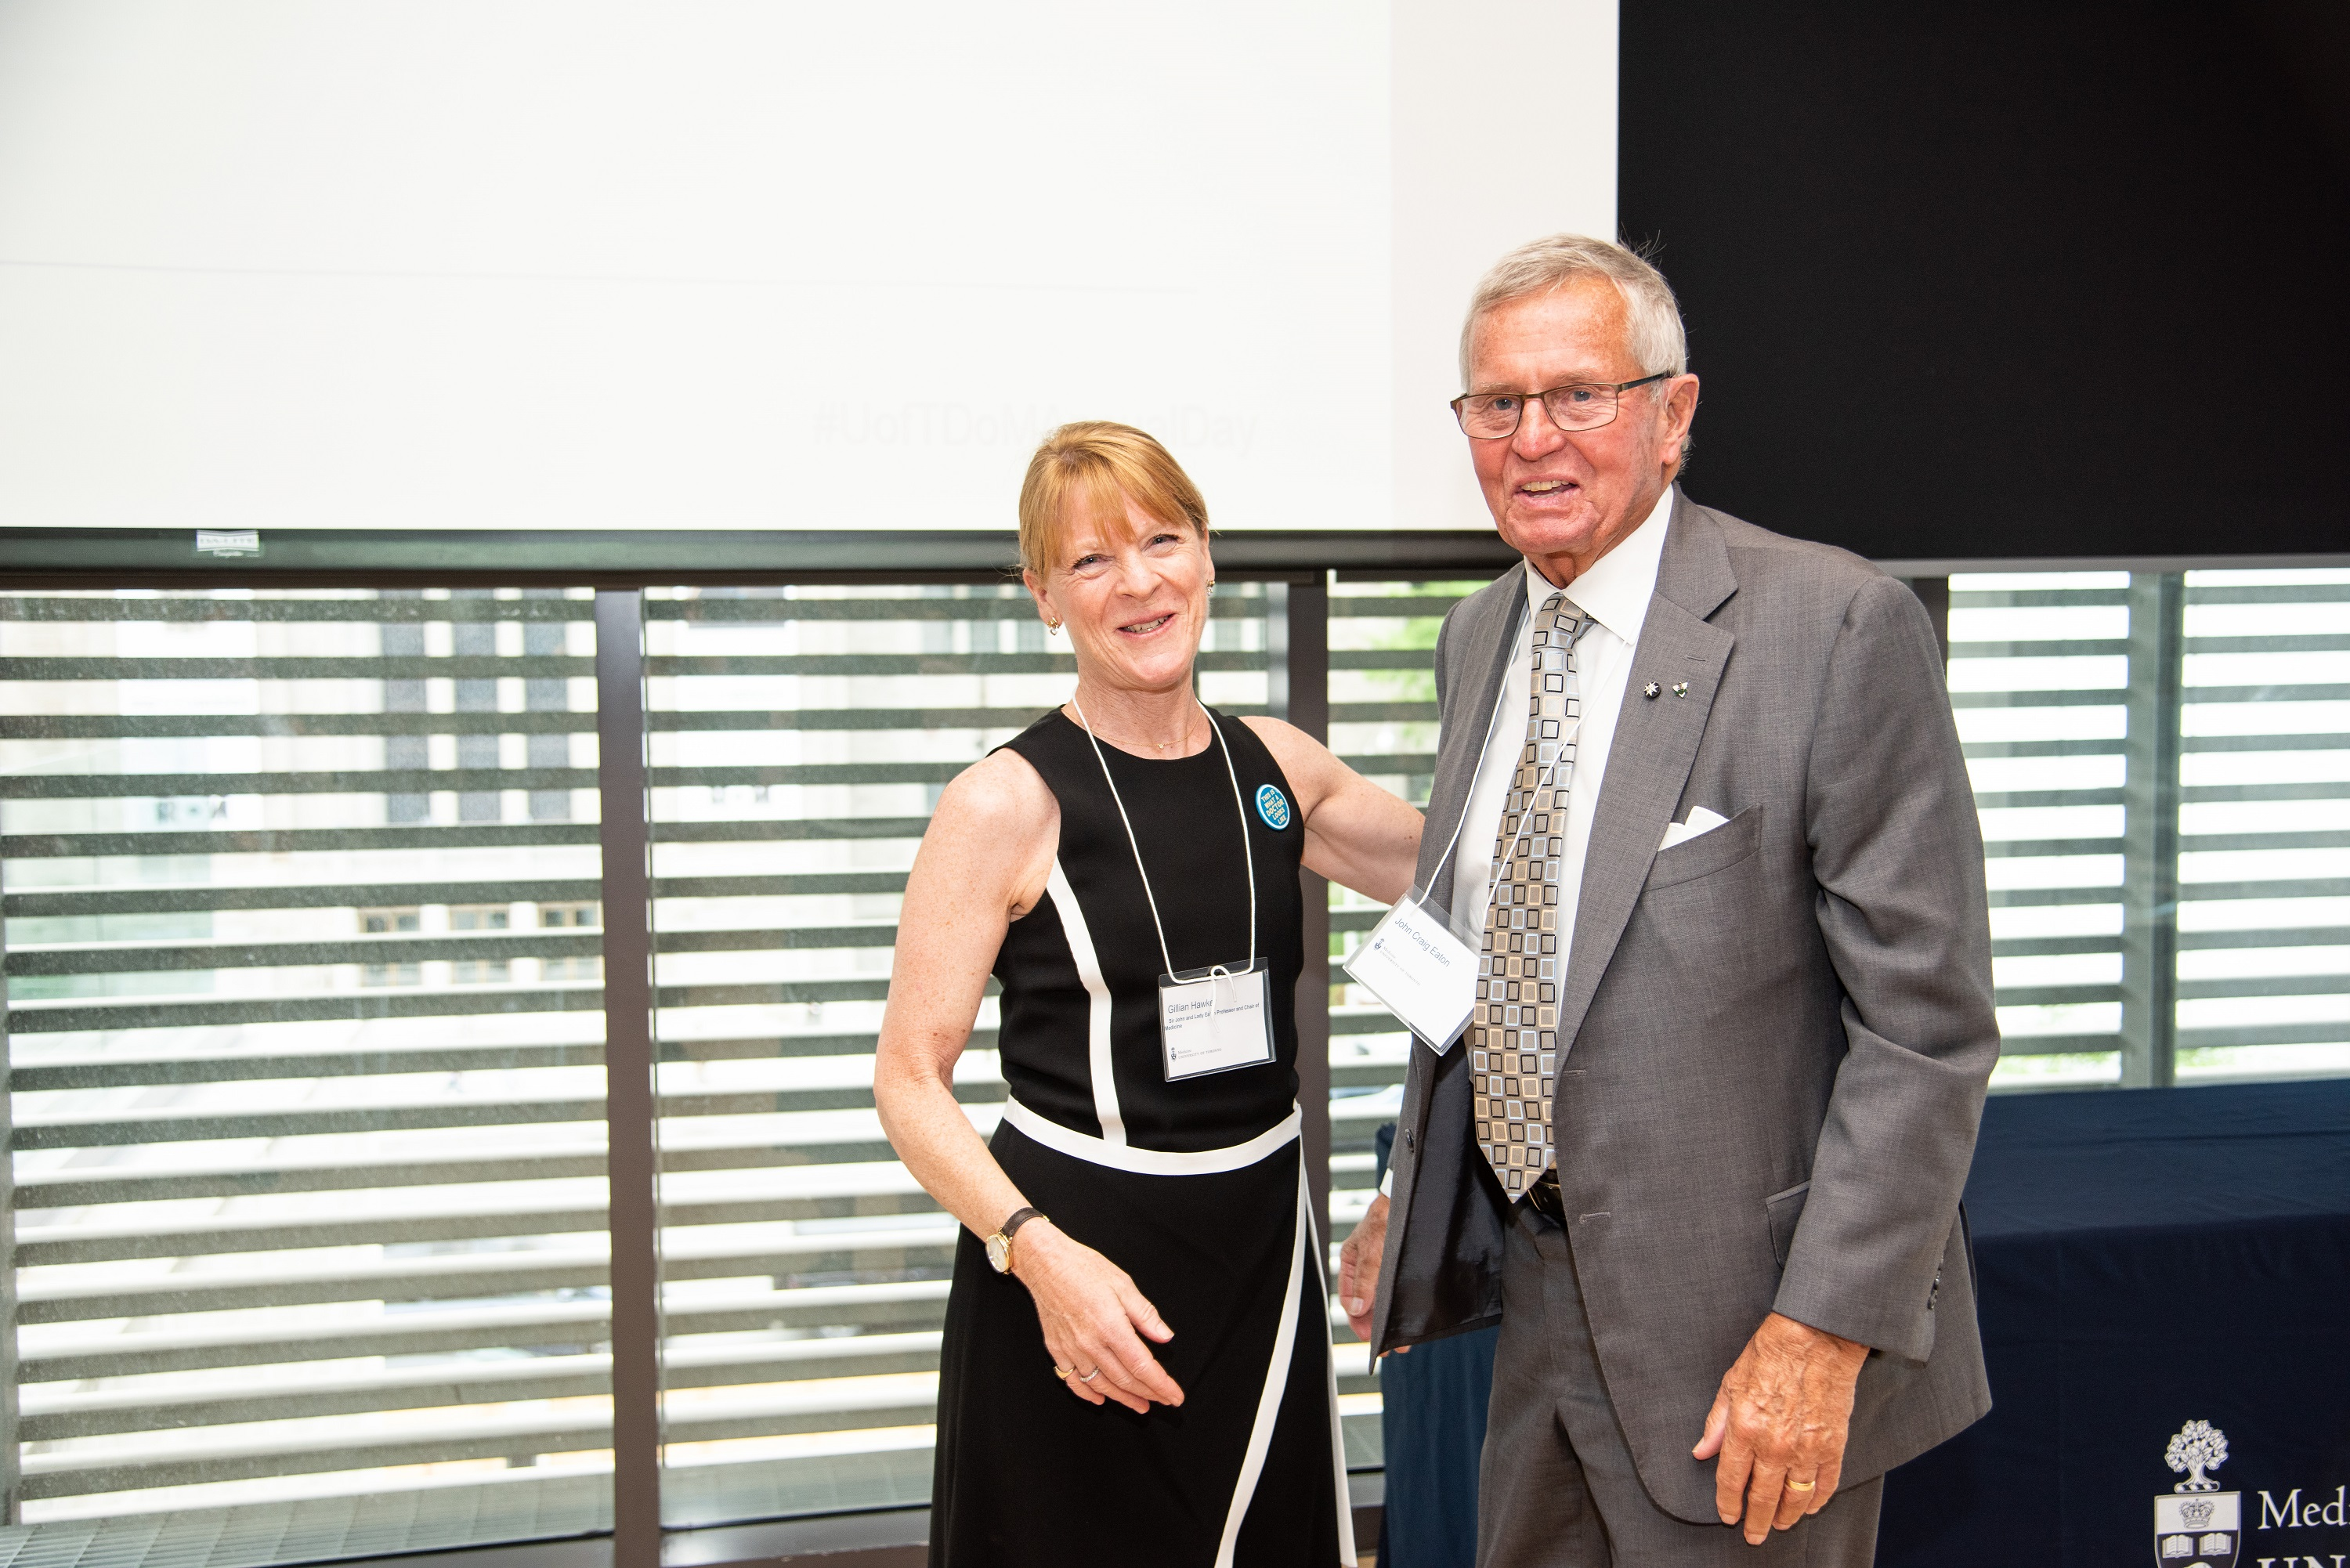 John Craig Eaton II with Professor and Chair Dr. Gillian Hawker, holder of the Sir John and Lady Eaton Chair. Photo by Kenneth Chou